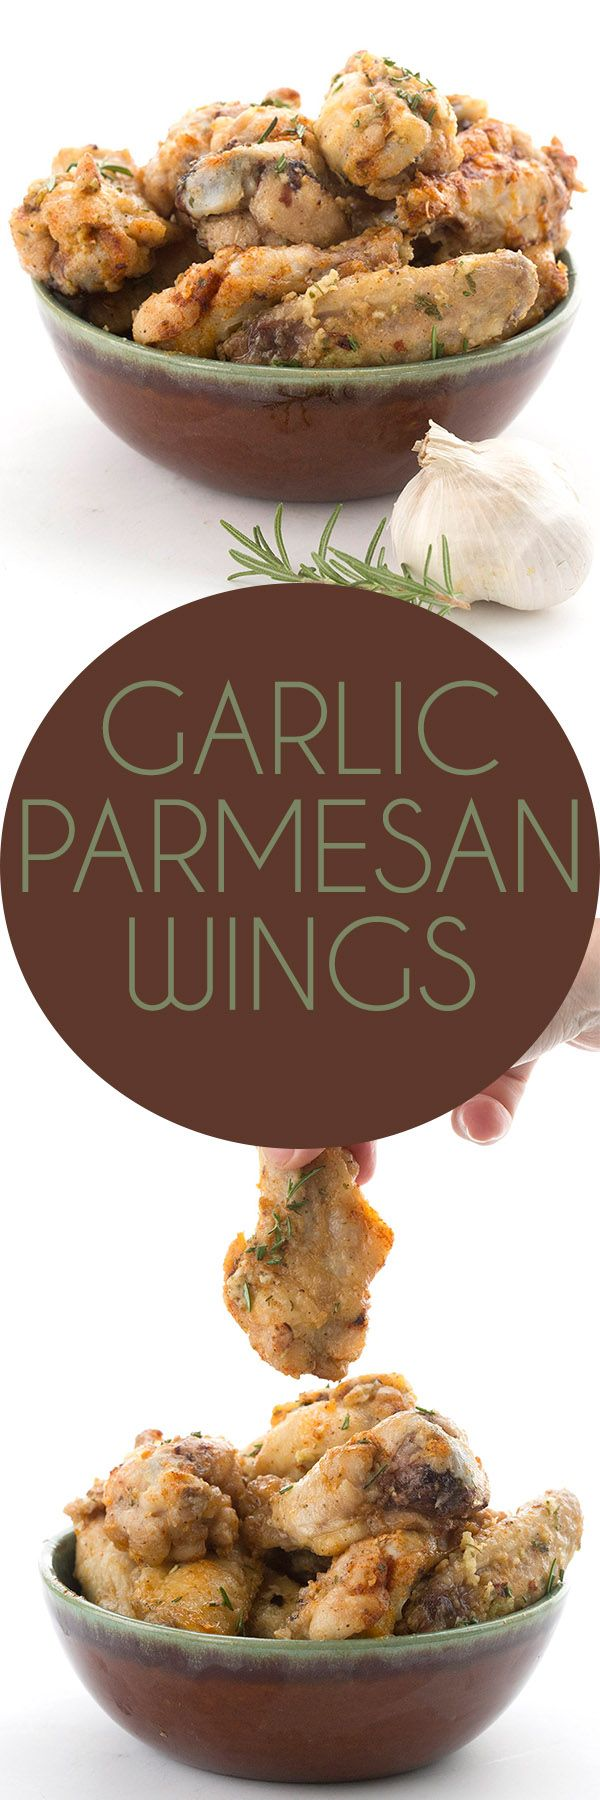 Simply the best keto garlic parmesan wings recipe. Crispy oven baked wings in a buttery garlic parmesan sauce. The best low carb wings you'll ever eat! LCHF Banting THM Recipe.  via @dreamaboutfood